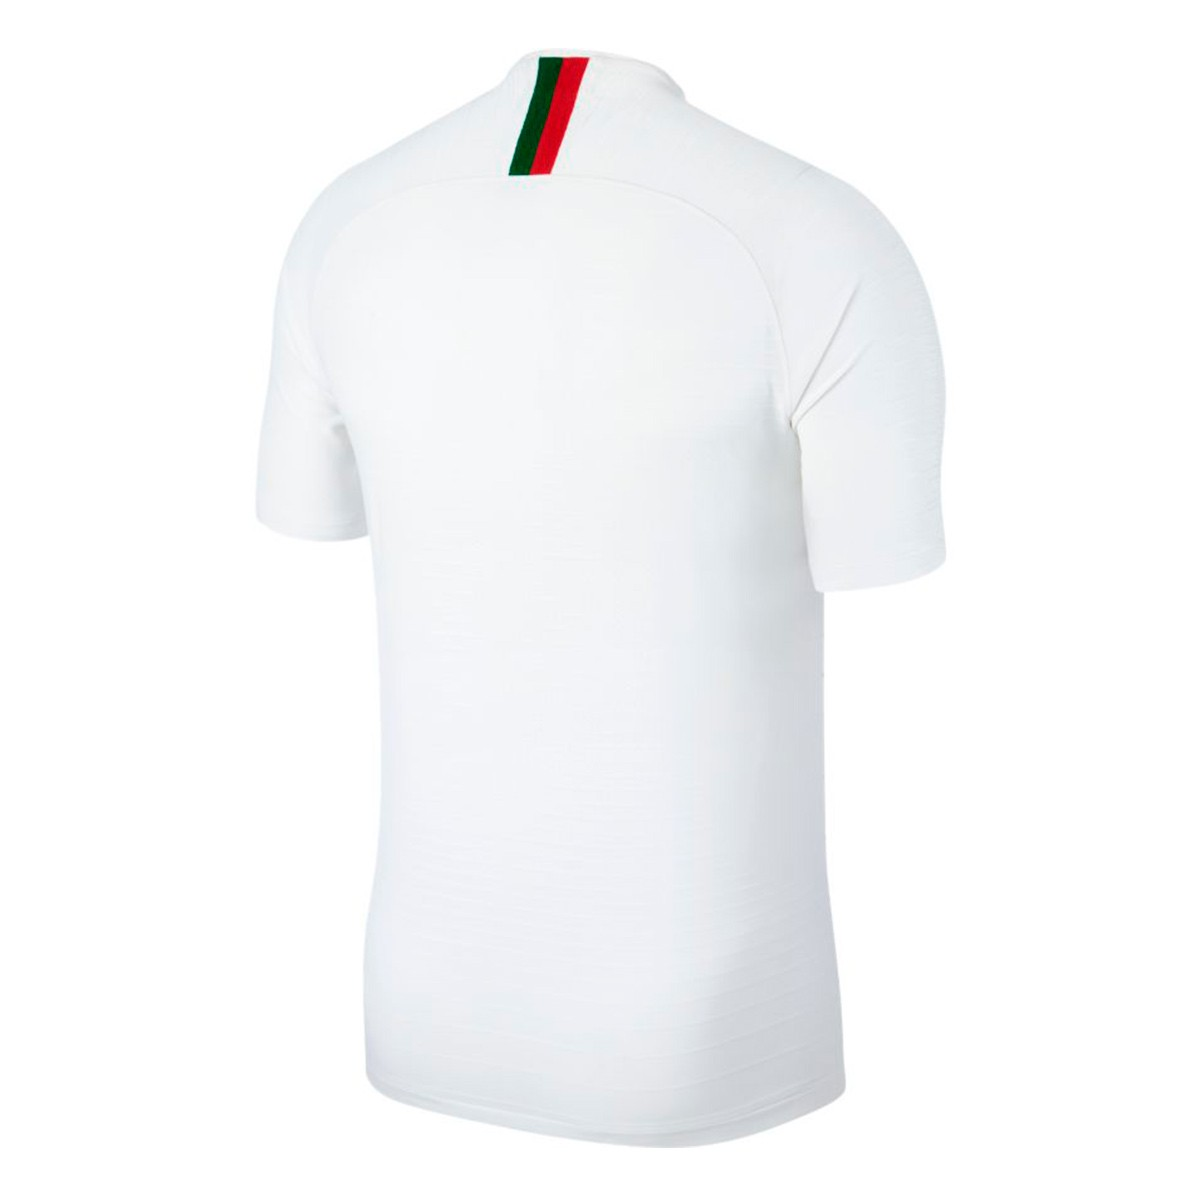 cd1d6ef5c Jersey Nike Portugal Vapor 2018-2019 Away White-Gym red - Football store  Fútbol Emotion